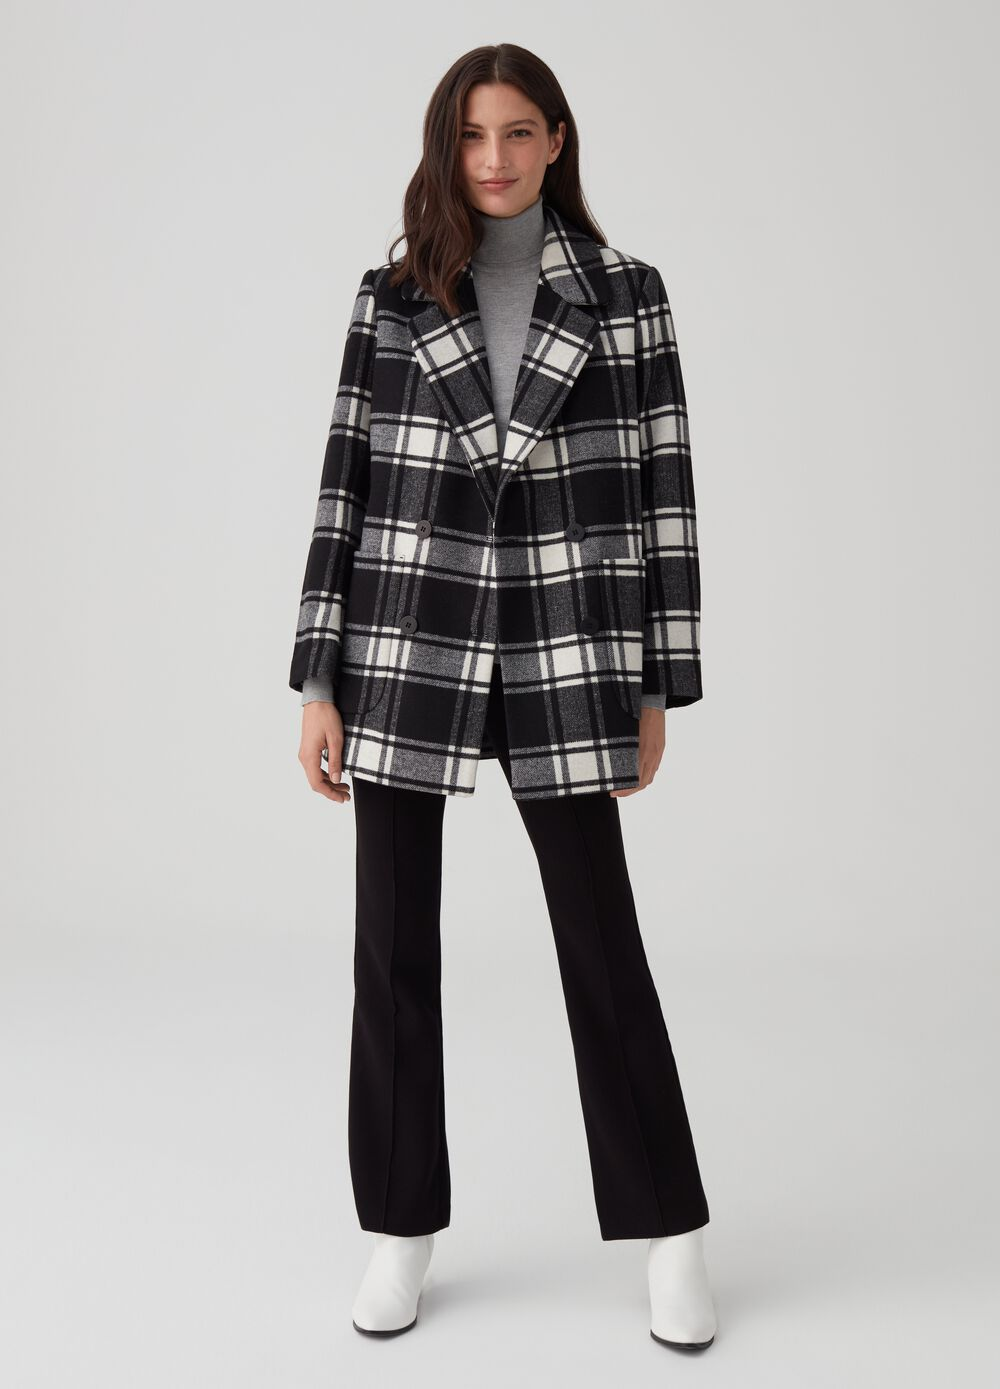 Coat with lapels and check pattern